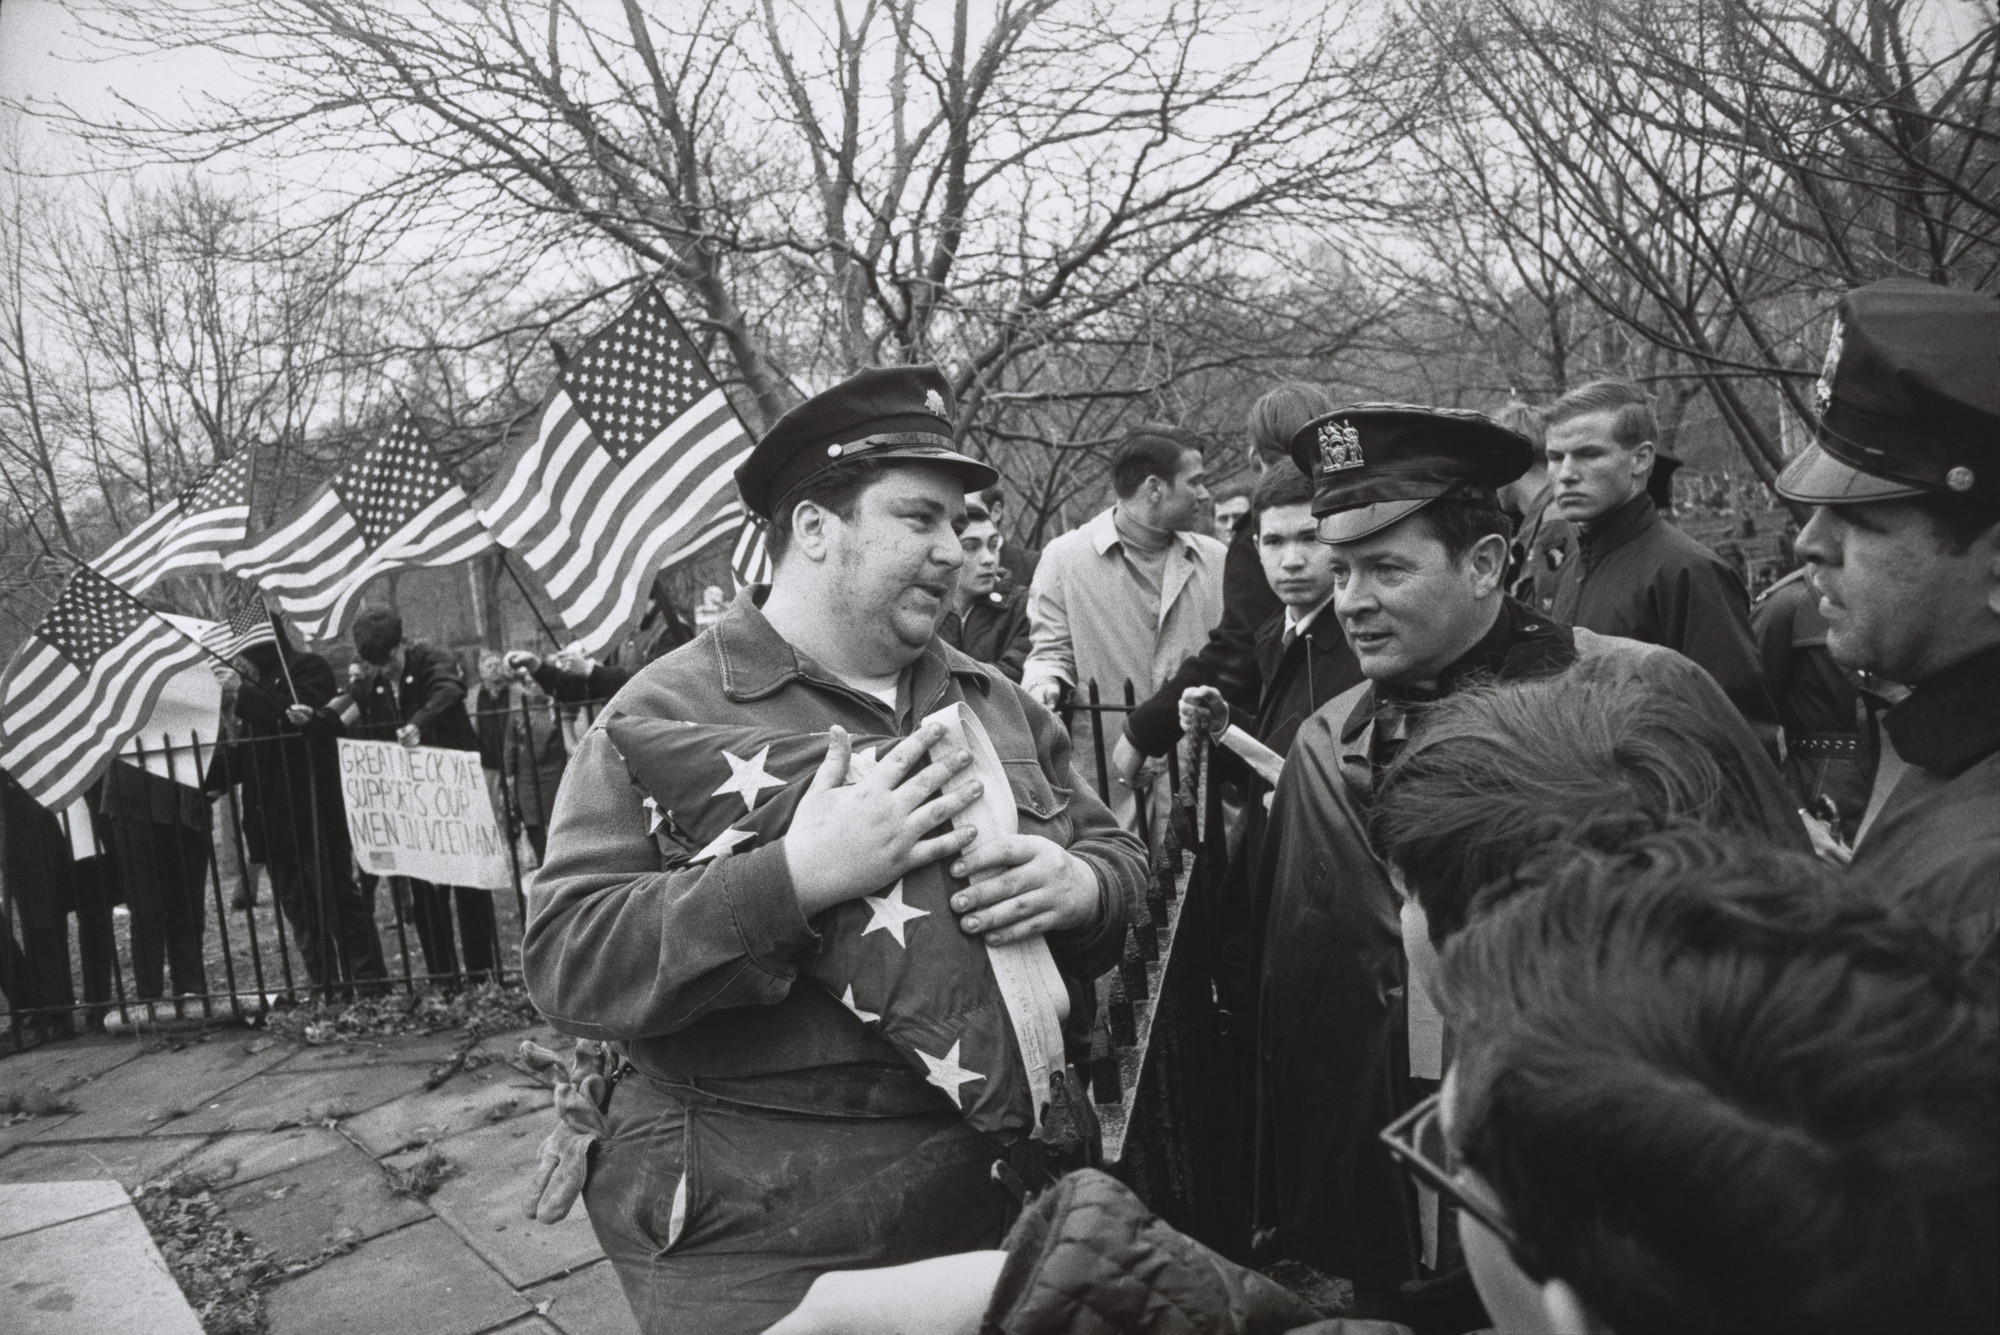 Garry Winogrand. Peace Demonstration, Central Park, New York. 1969